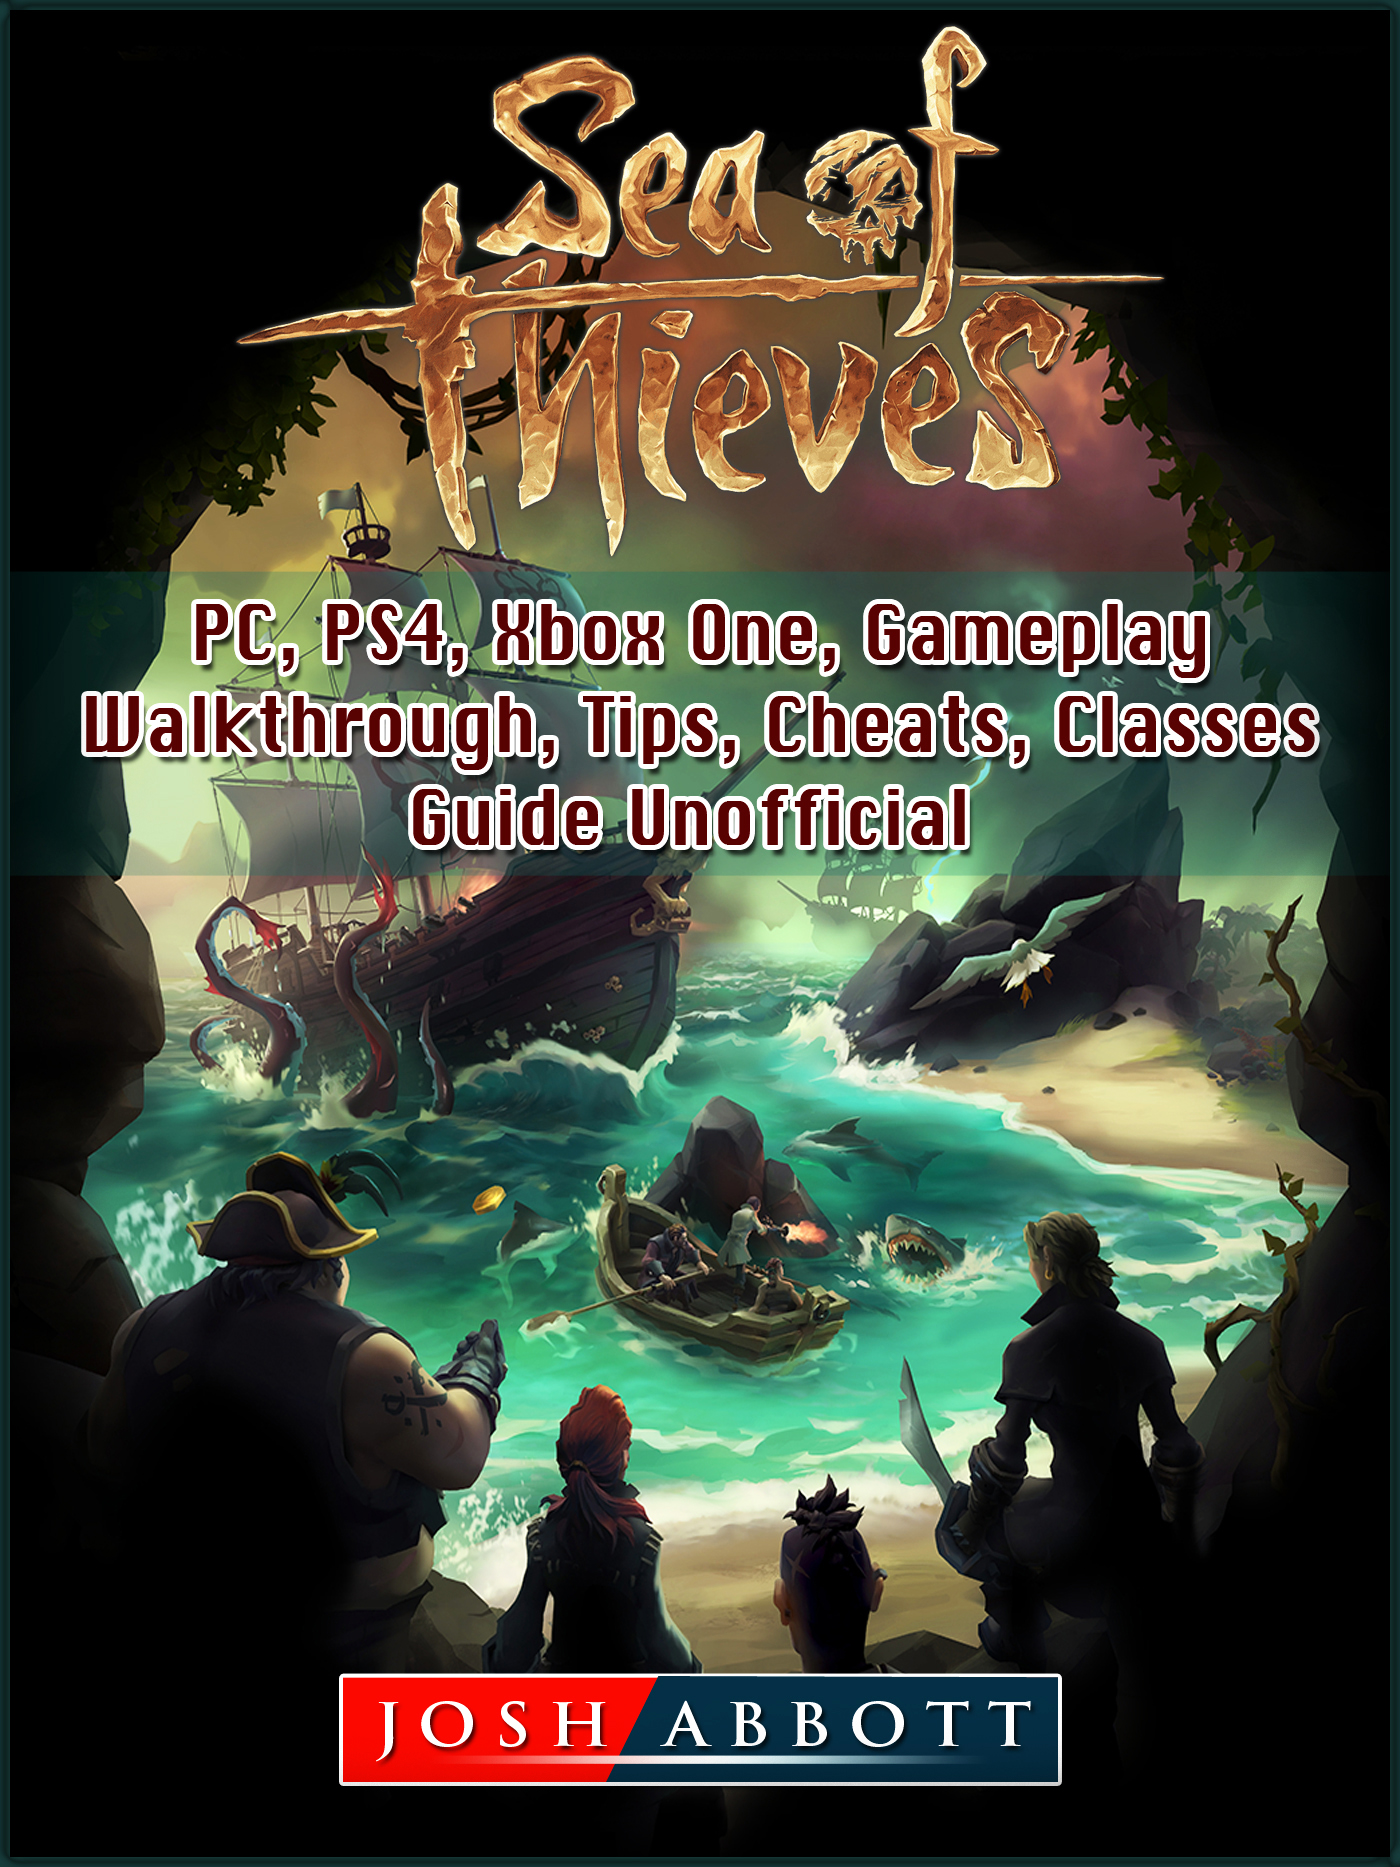 Sea of Thieves, PC, PS4, Xbox One, Gameplay, Walkthrough, Tips